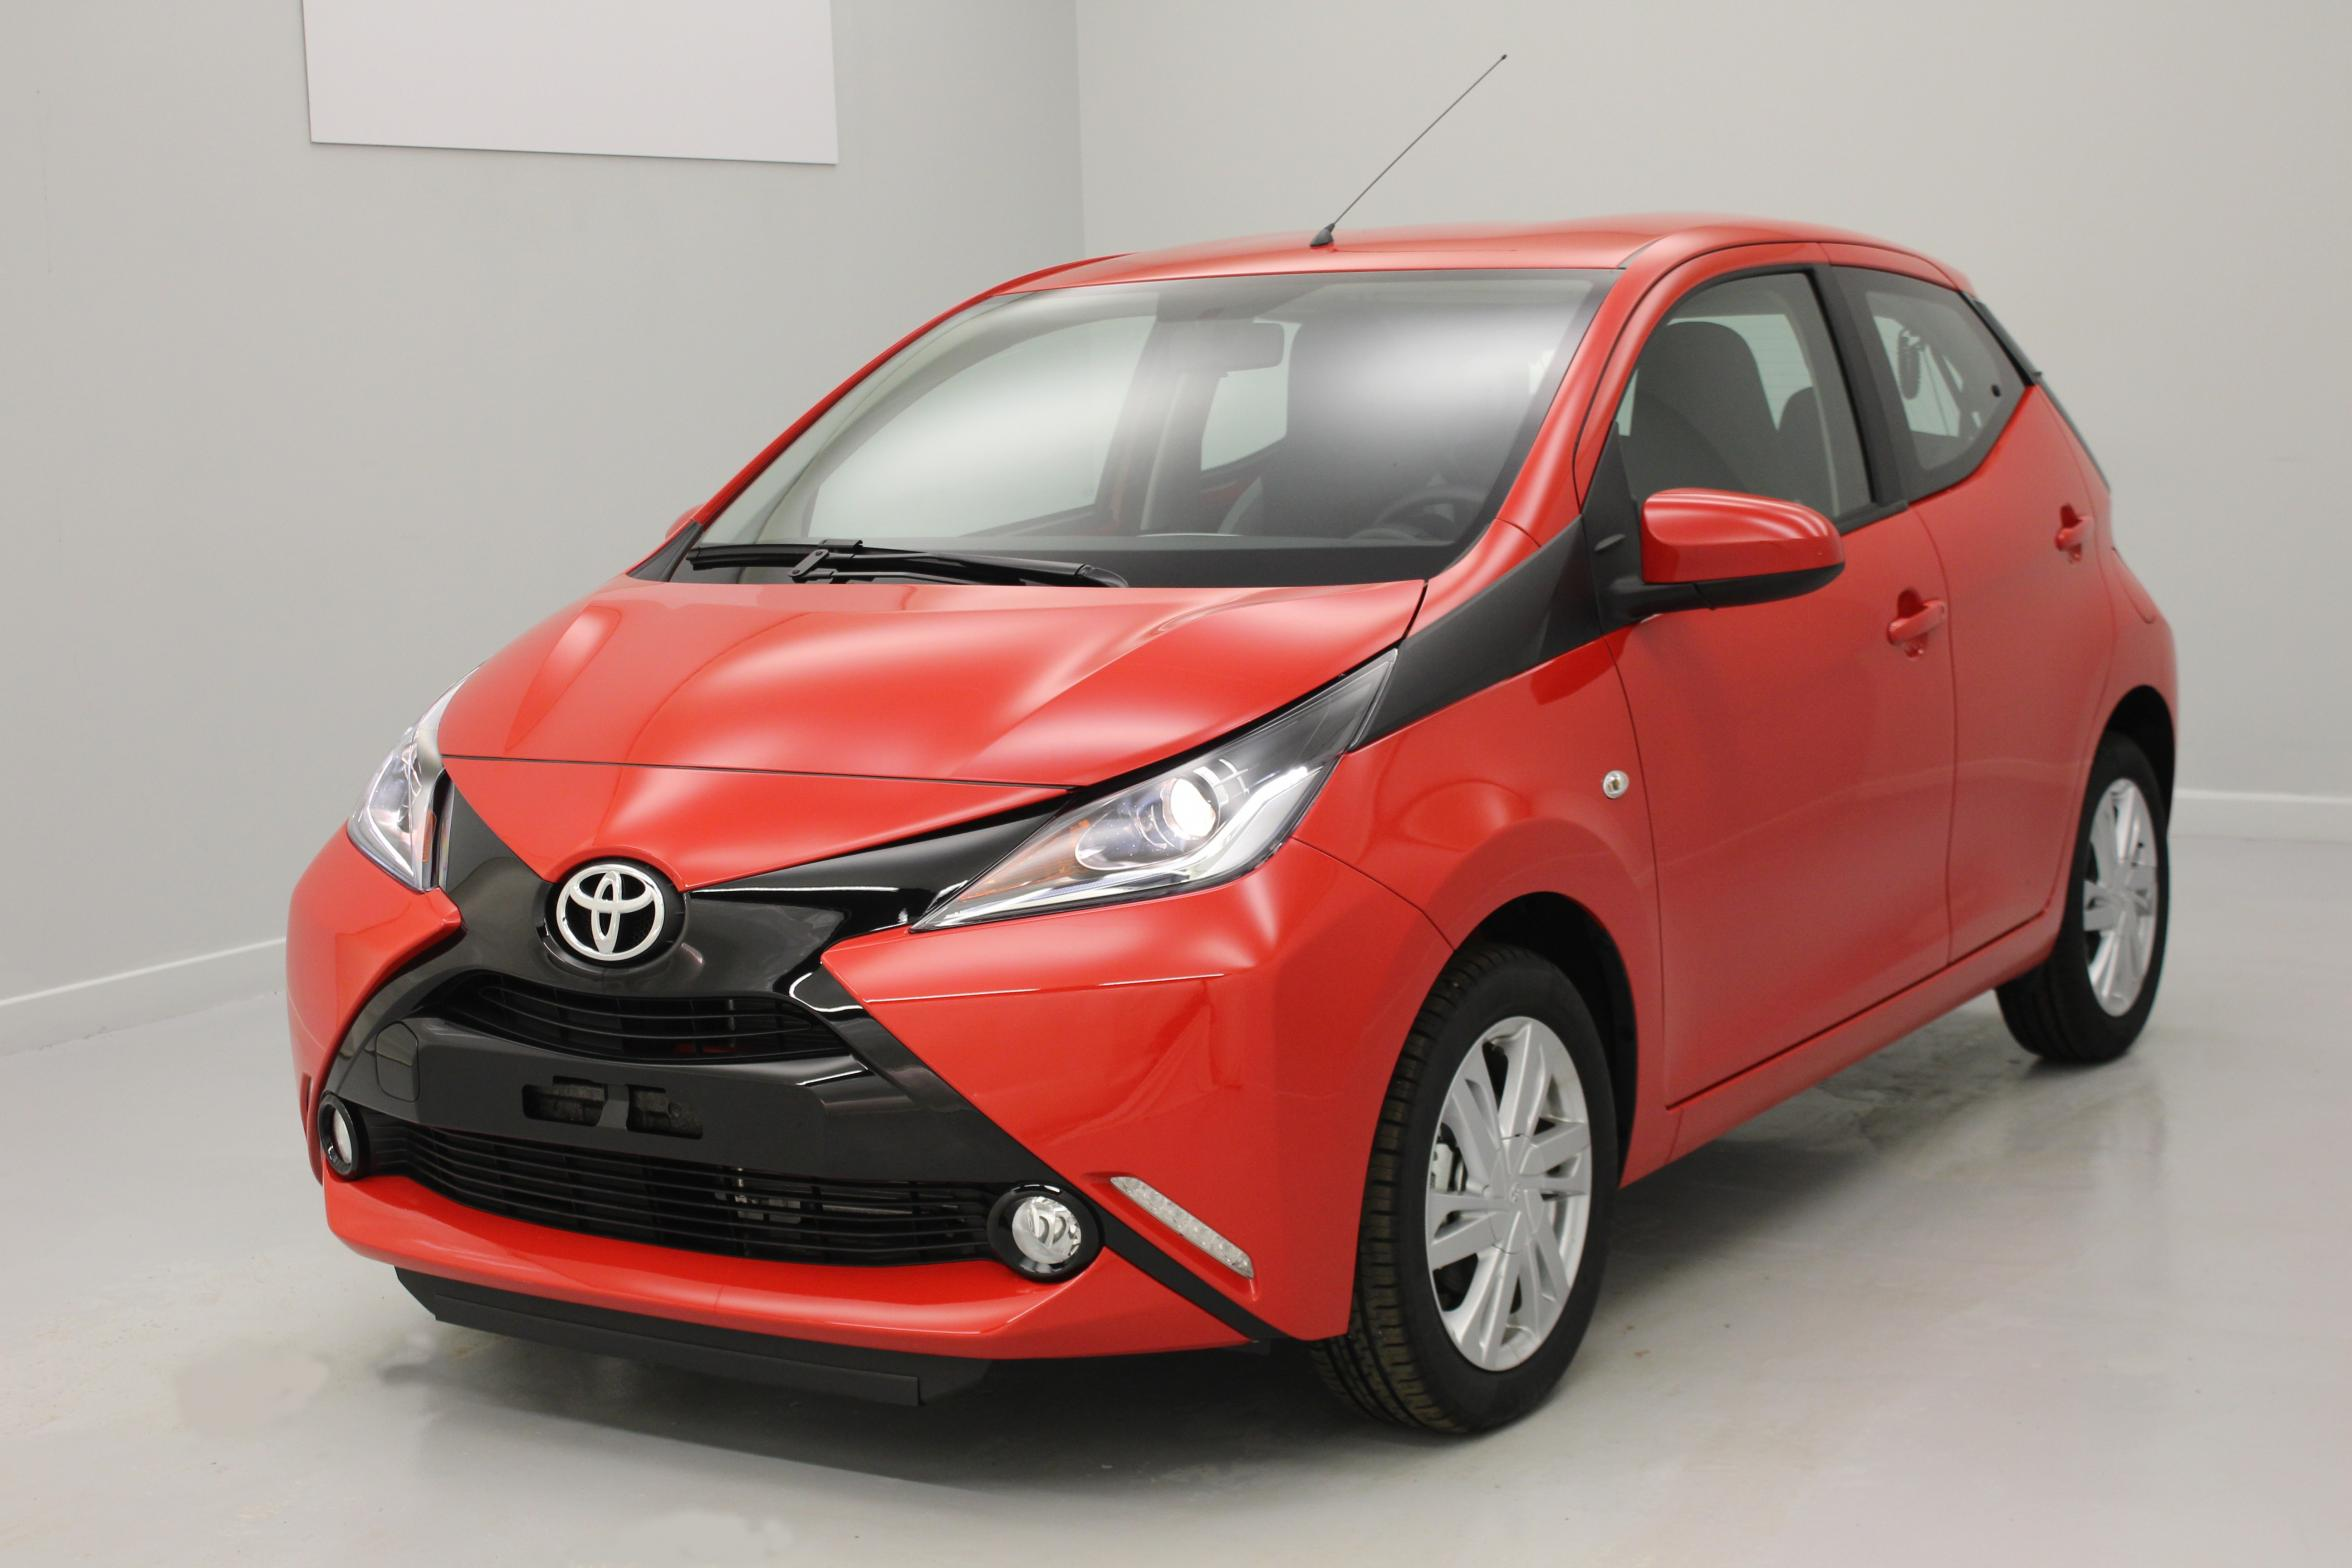 toyota aygo 1 0 vvt i x play rouge chilien x touch x light jantes alliage 15 39 avec options. Black Bedroom Furniture Sets. Home Design Ideas